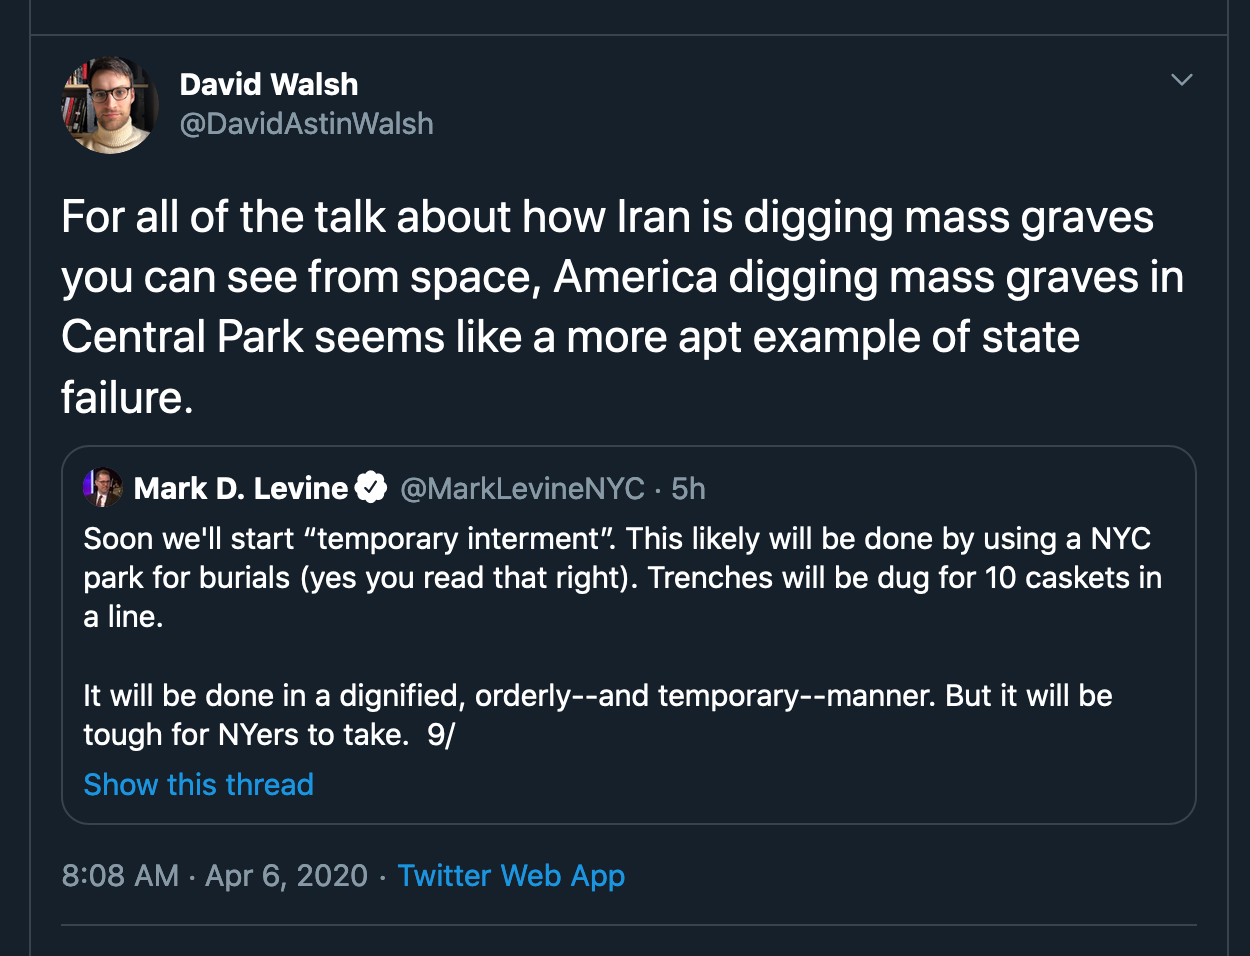 RT David Walsh @DavidAstinWalsh 'For all of the talk about how Iran is digging mass graves you can see from space, America digging mass graves in Central Park seems like a more apt example of state failure.'